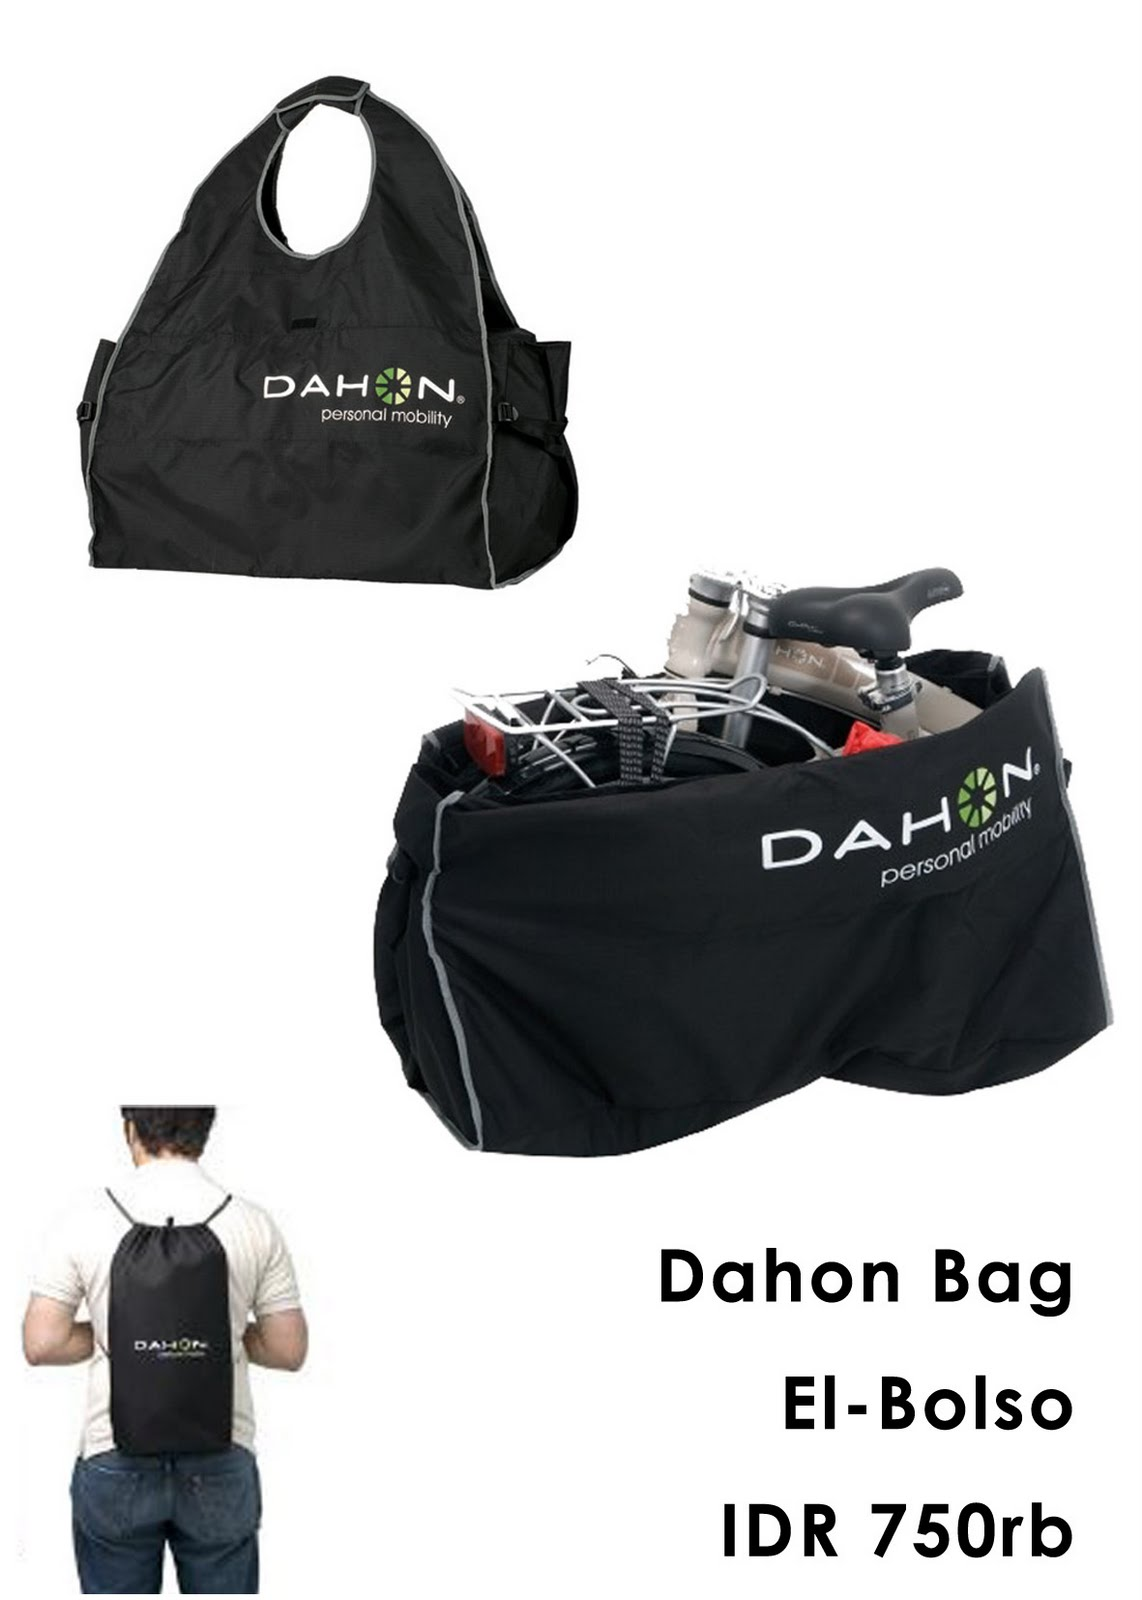 Dahon Bag El Bolso http://monsterbikestc.blogspot.com/2010_05_01_archive.html